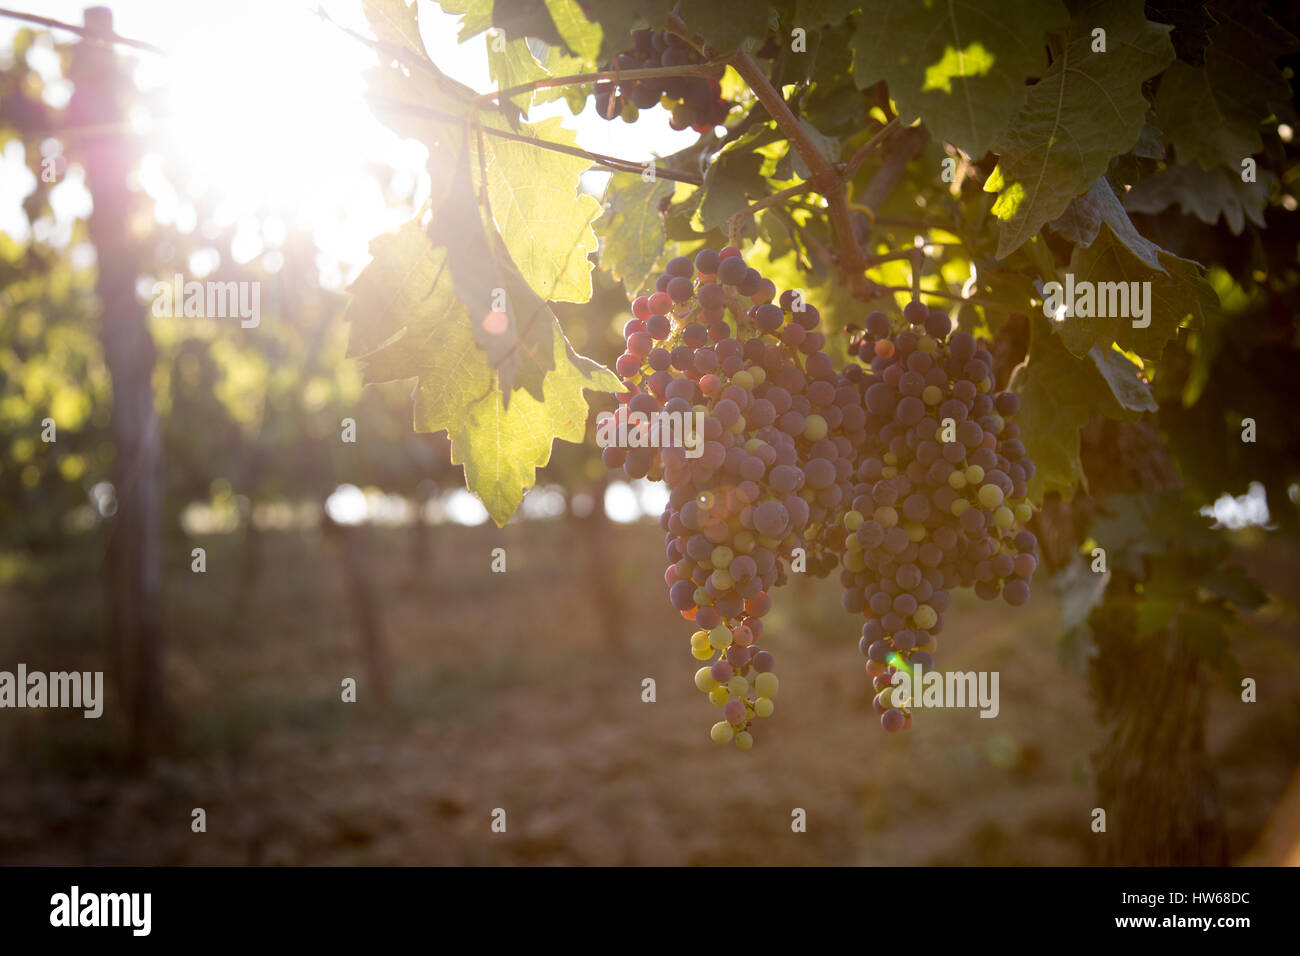 Grapes on the vine - Stock Image